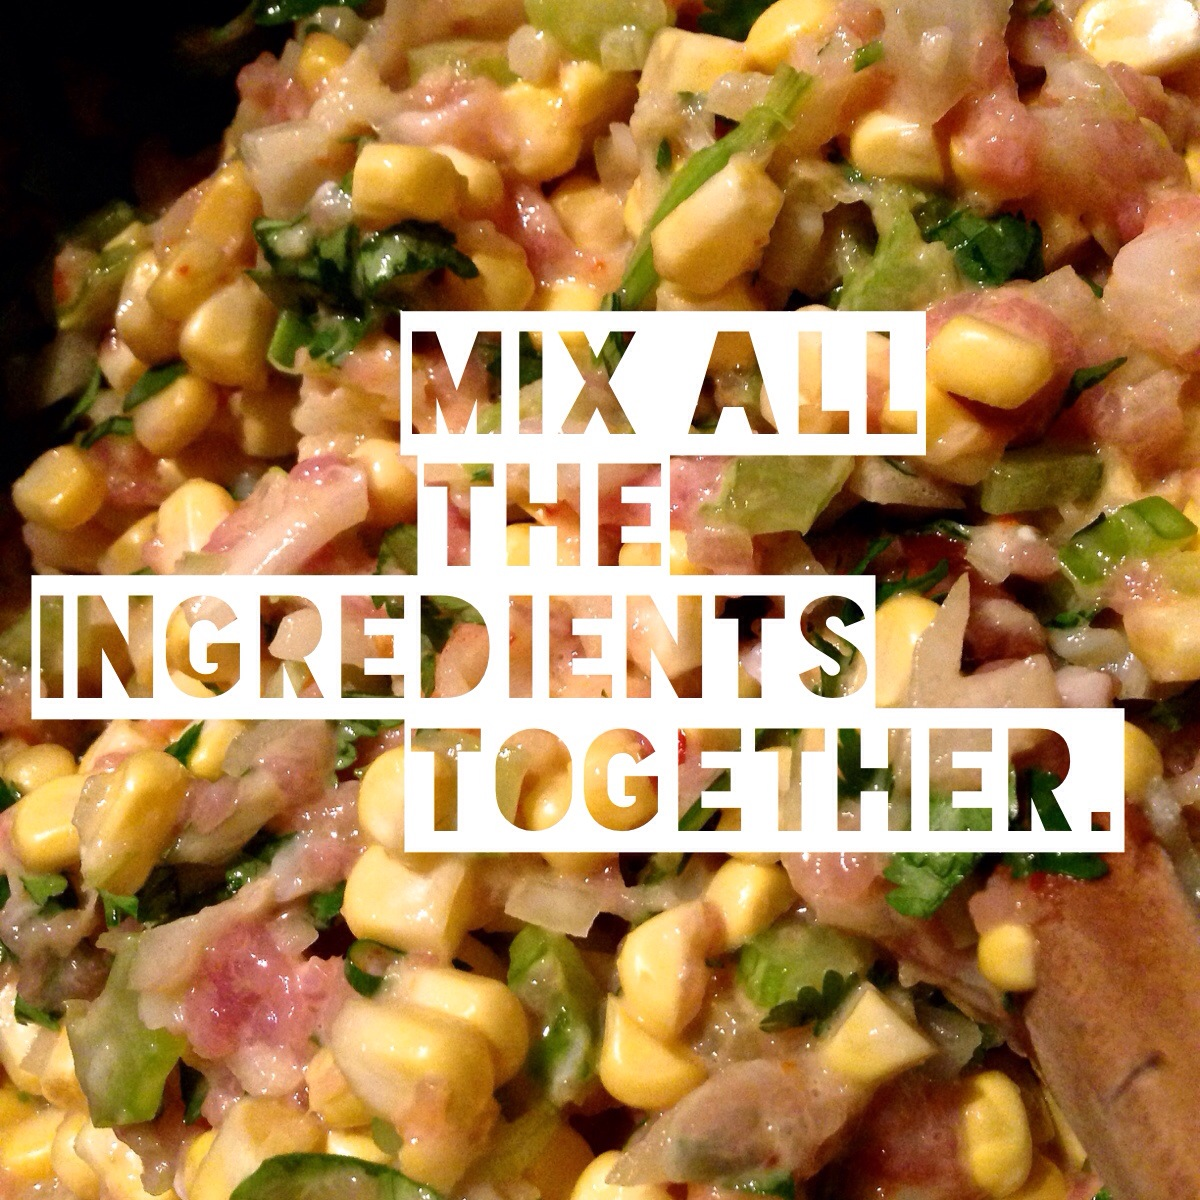 Corn Fritters Mix all ingredients together